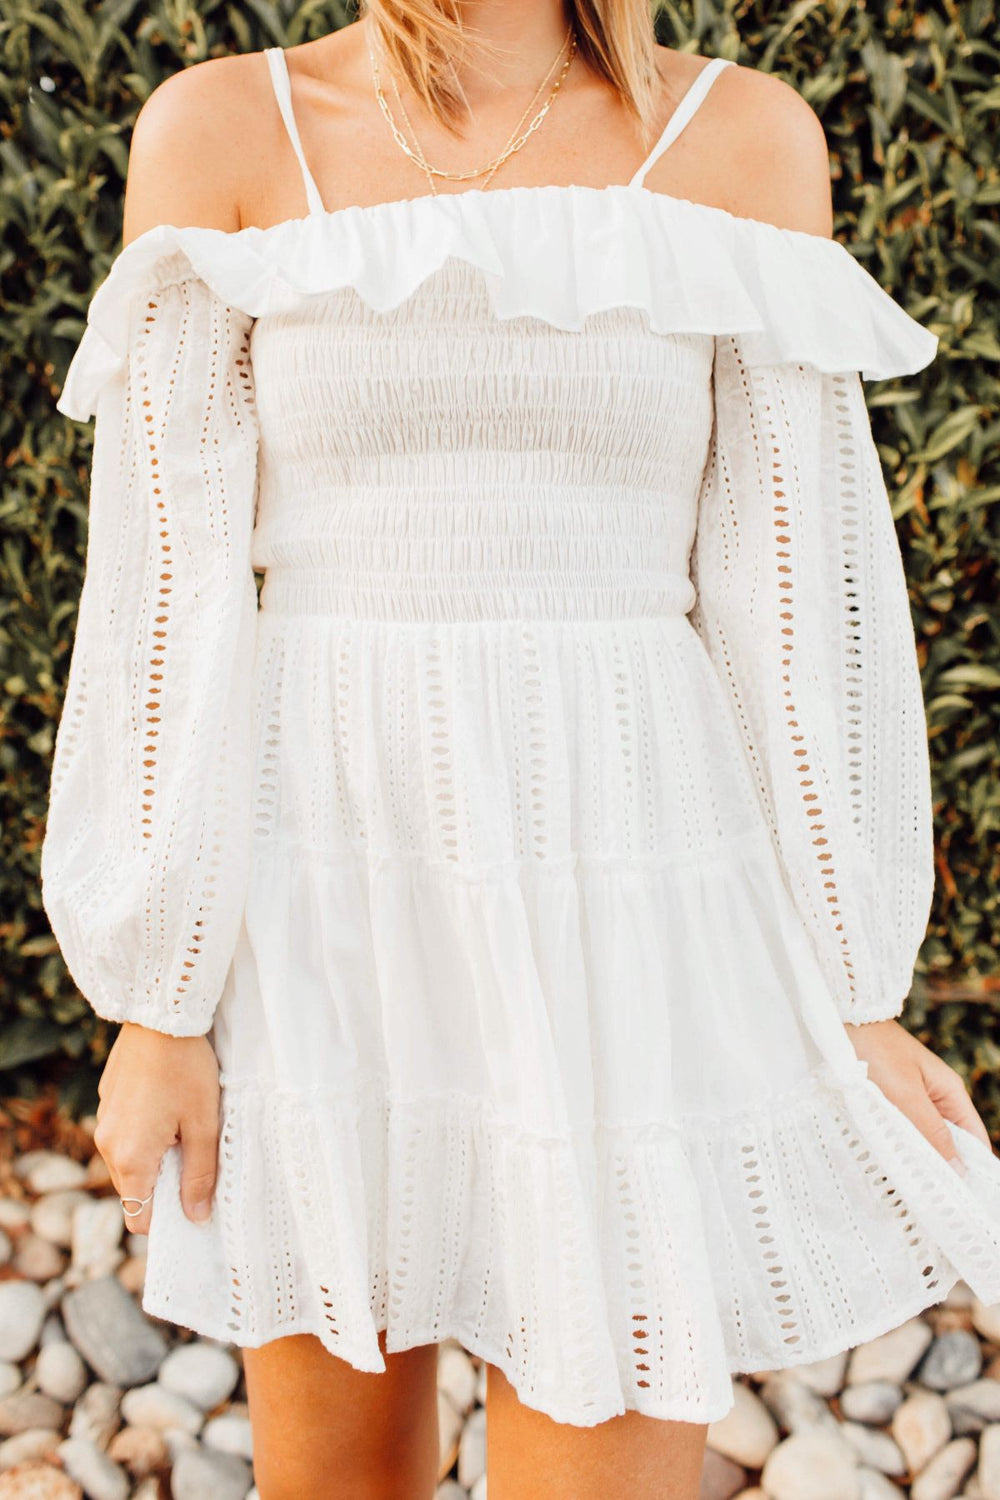 Wonderland White Smocked Dress Inspired by Ashley from Twenties Girl Style